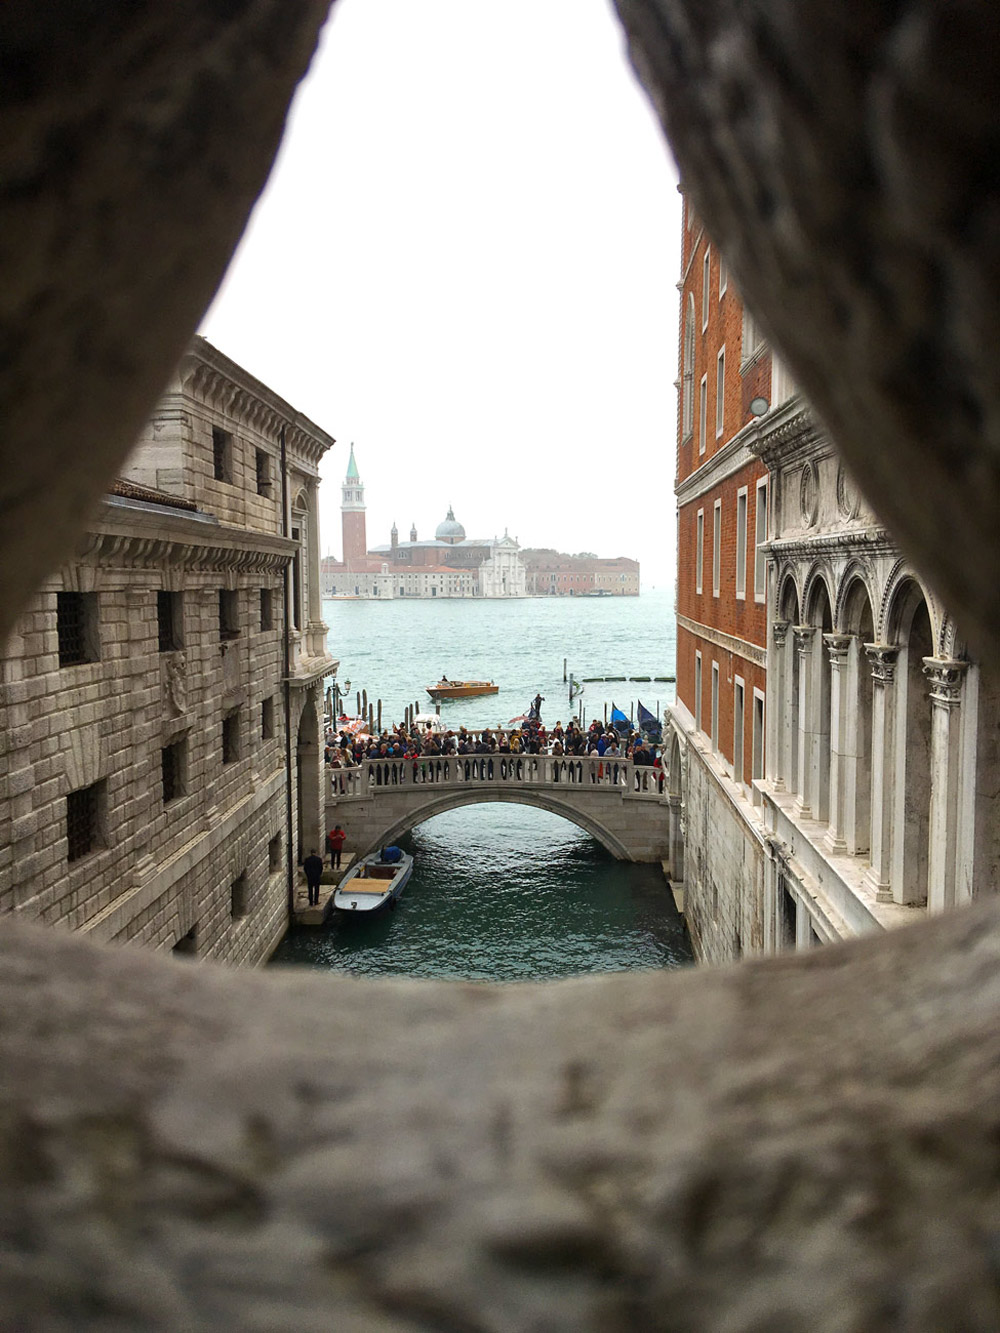 View from the Bridge of Sighs, Doge's Palace